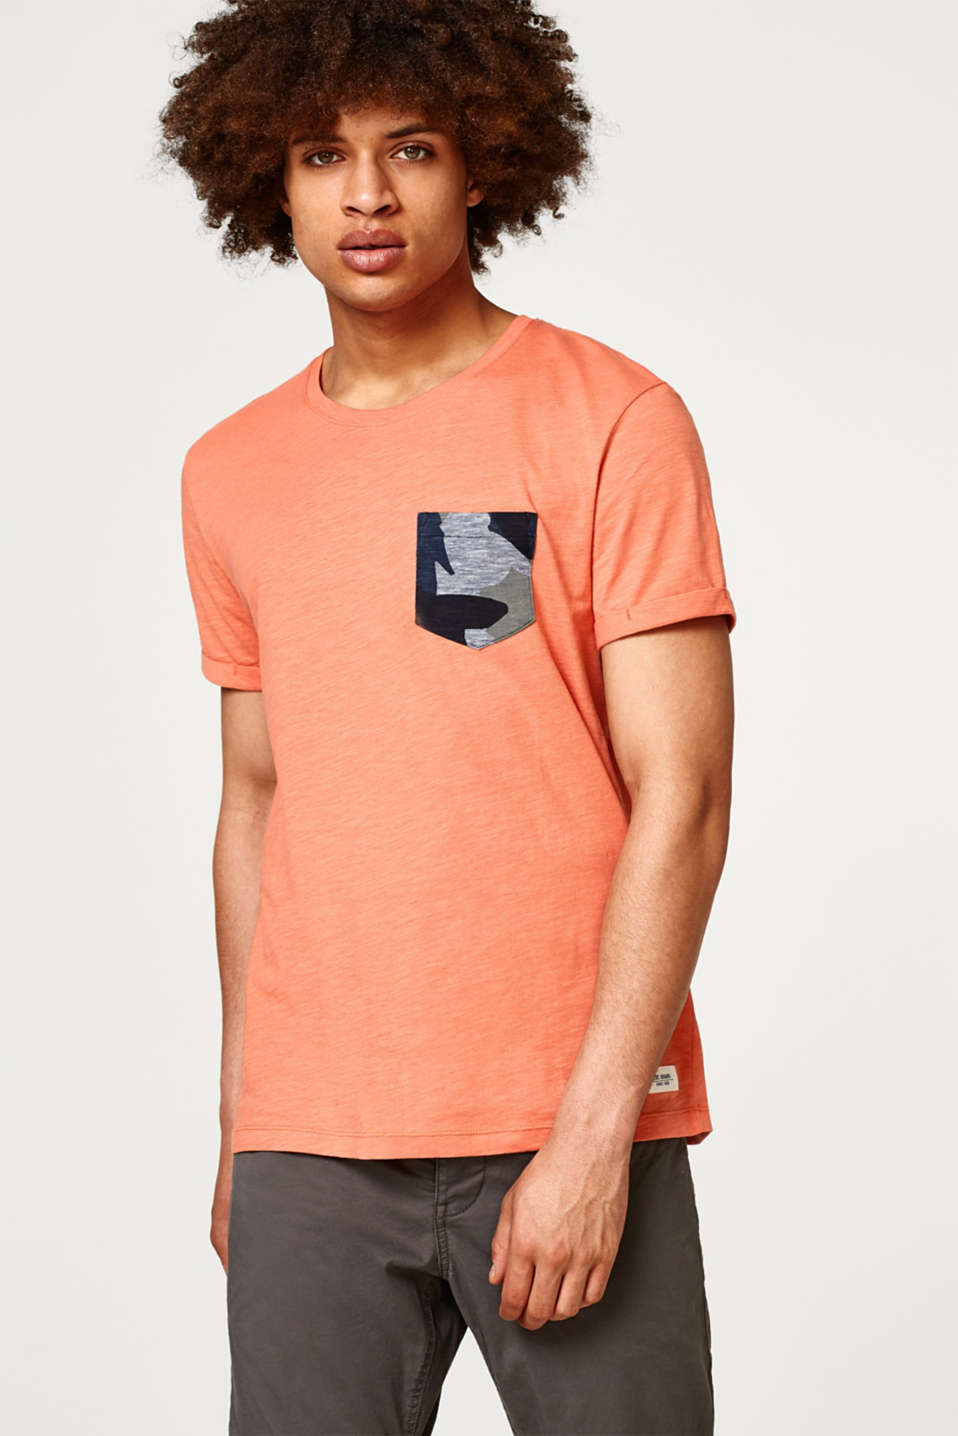 edc - Slub jersey T-shirt with a camouflage breast pocket